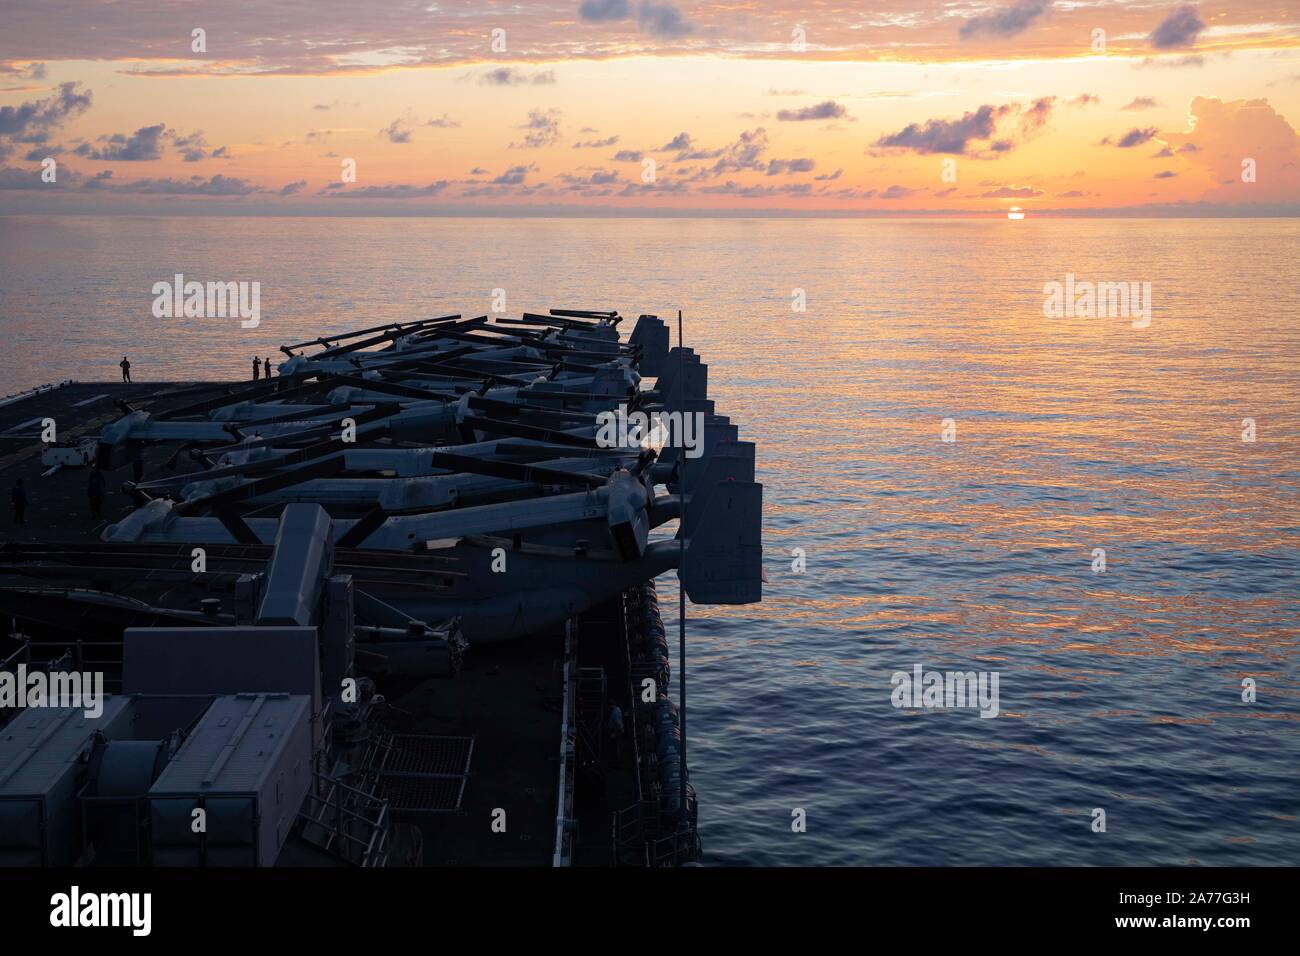 191029-N-MH210-1044  ATLANTIC OCEAN (Oct. 29, 2019) - The amphibious assault ship USS Bataan (LHD 5) sails on the Atlantic Ocean, Oct. 29, 2019. Bataan is underway conducting a composite training unit exercise (COMPTUEX) with the Bataan Amphibious Ready Group and 26th Marine Expeditionary Unit. (U.S. Navy photo by Mass Communication Specialist 2nd Class Zachary A. Anderson) Stock Photo